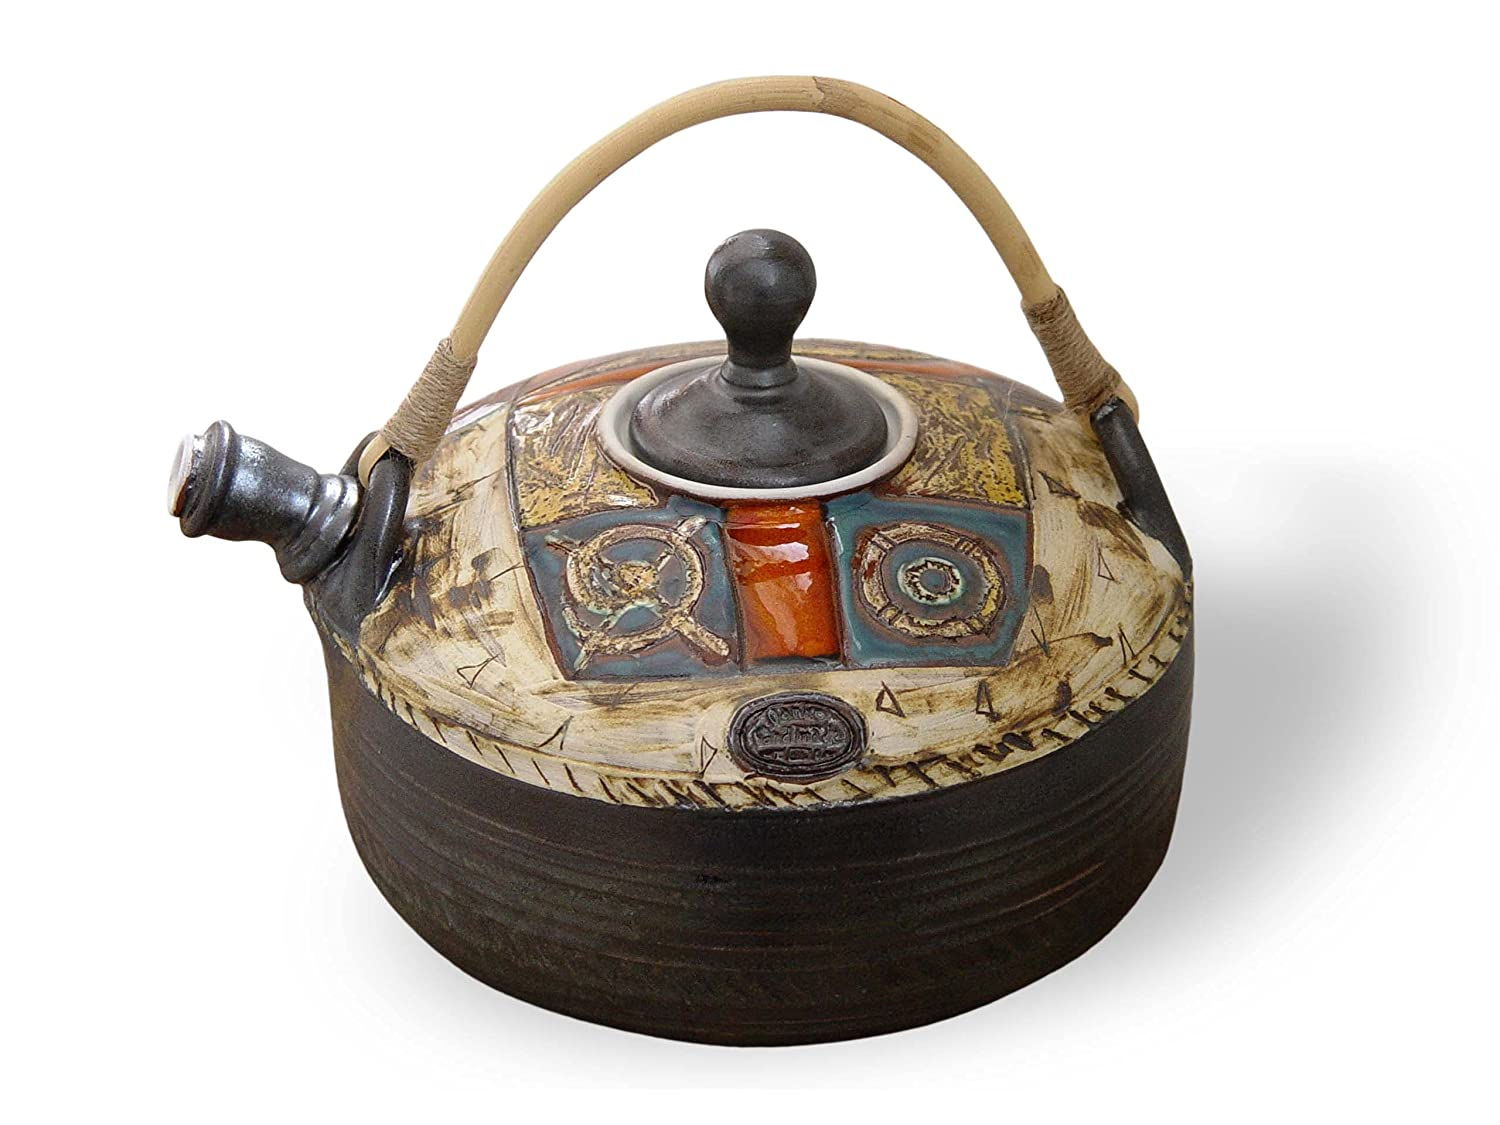 Colorful Pottery Teapot with Wicker Indianapolis Mall Wheel Tea High material Handle. Pot Thrown